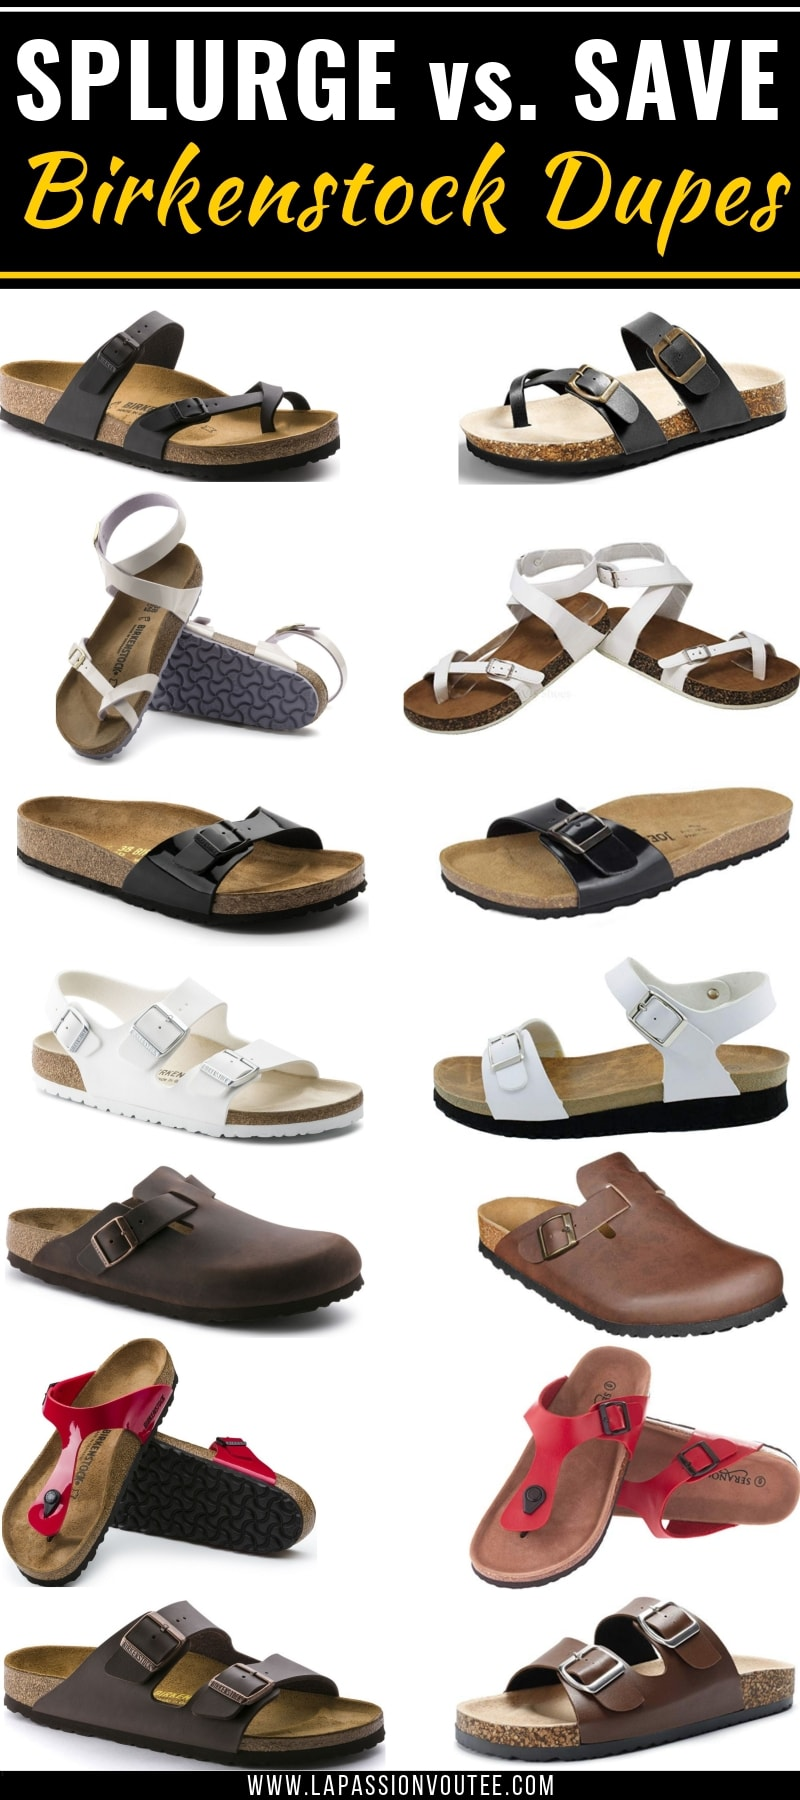 25+ Birkenstock look alikes and dupes that are way more affordable with the same quality and functionality as the original sandals. You're going to love these amazing alternatives to Birkenstock, you'll be back for more dupes! This post is all about the best designer dupes, Birkenstock gizeh, Birkenstock outfit, Birkenstock sandals, Birkenstock knockoffs, 3 sstrap sandals, Boston clogs.